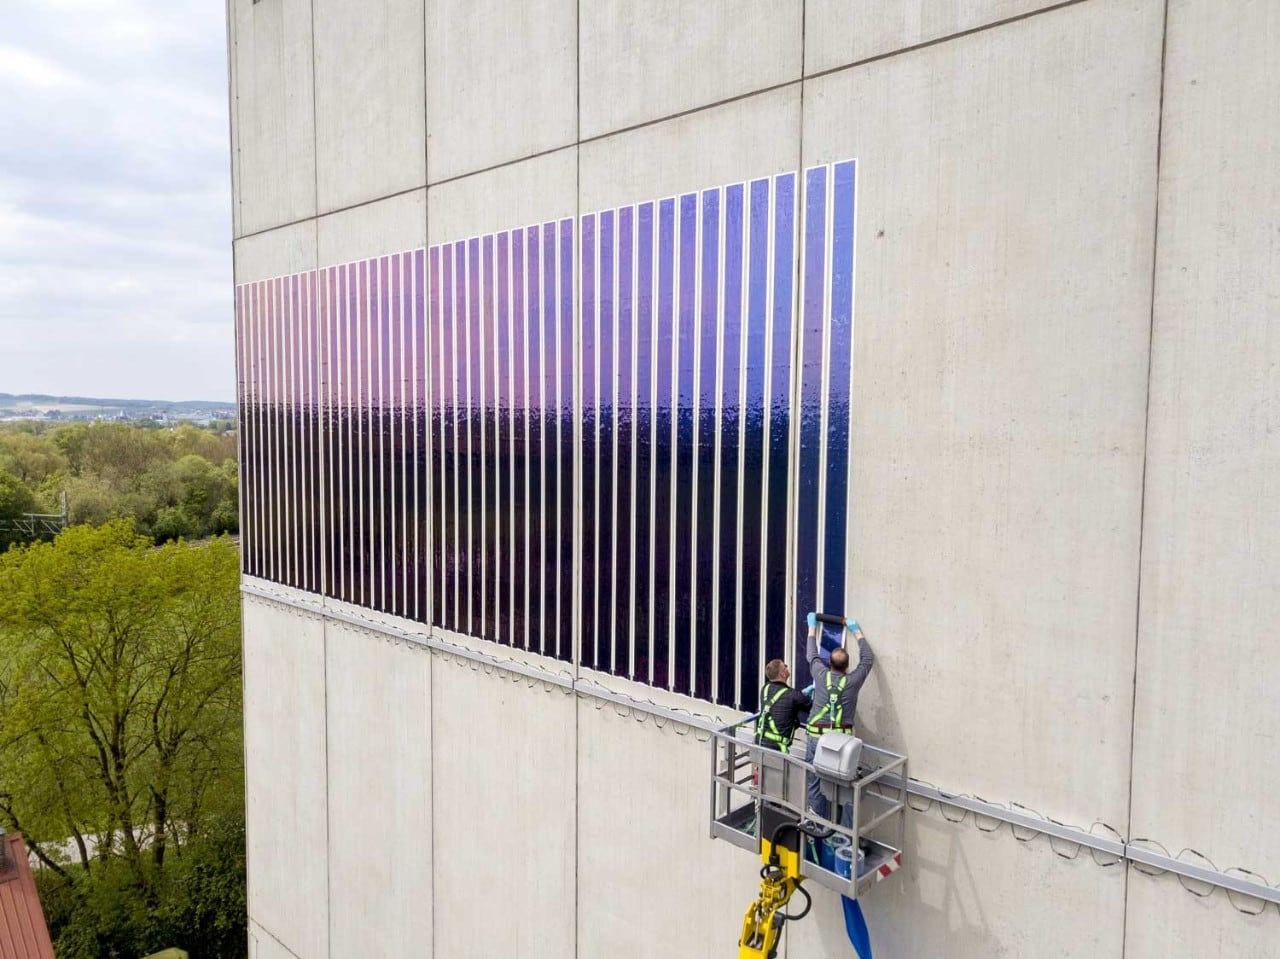 workers applying solar film to building